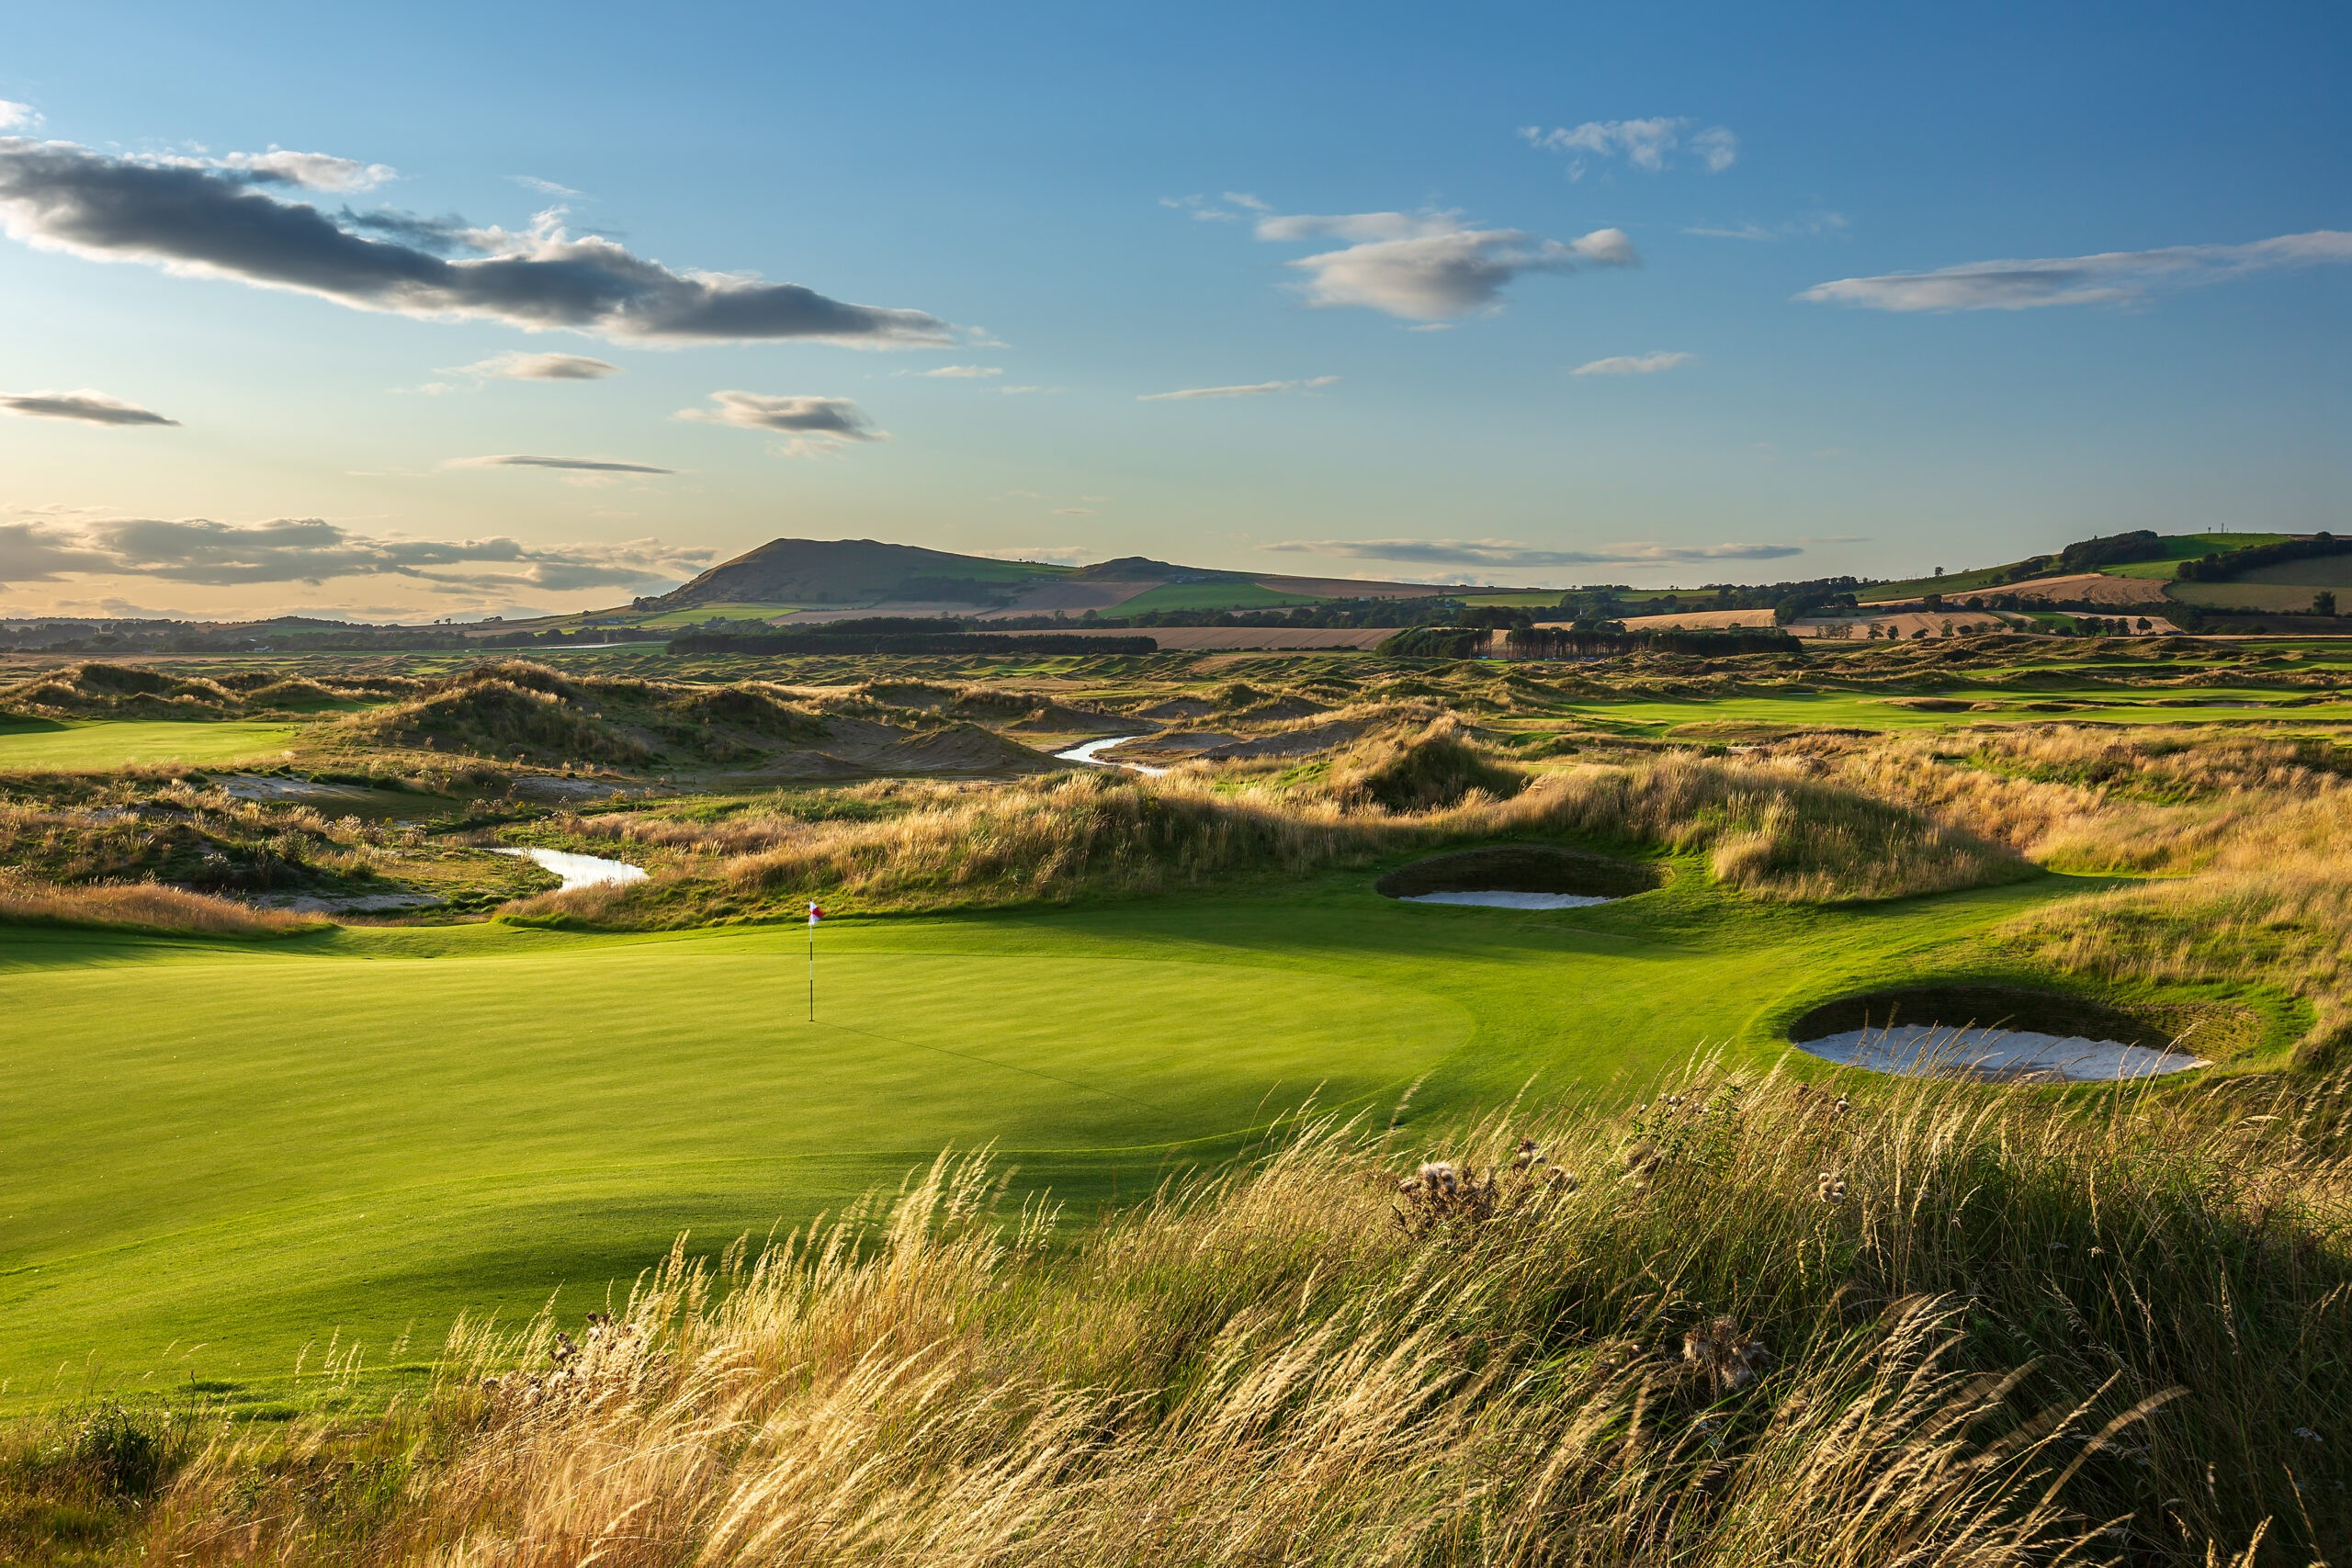 The natural beauty of the Fife coastline makes for an incredible backdrop at Dumbarnie Links. Courtesy of Dumbarnie